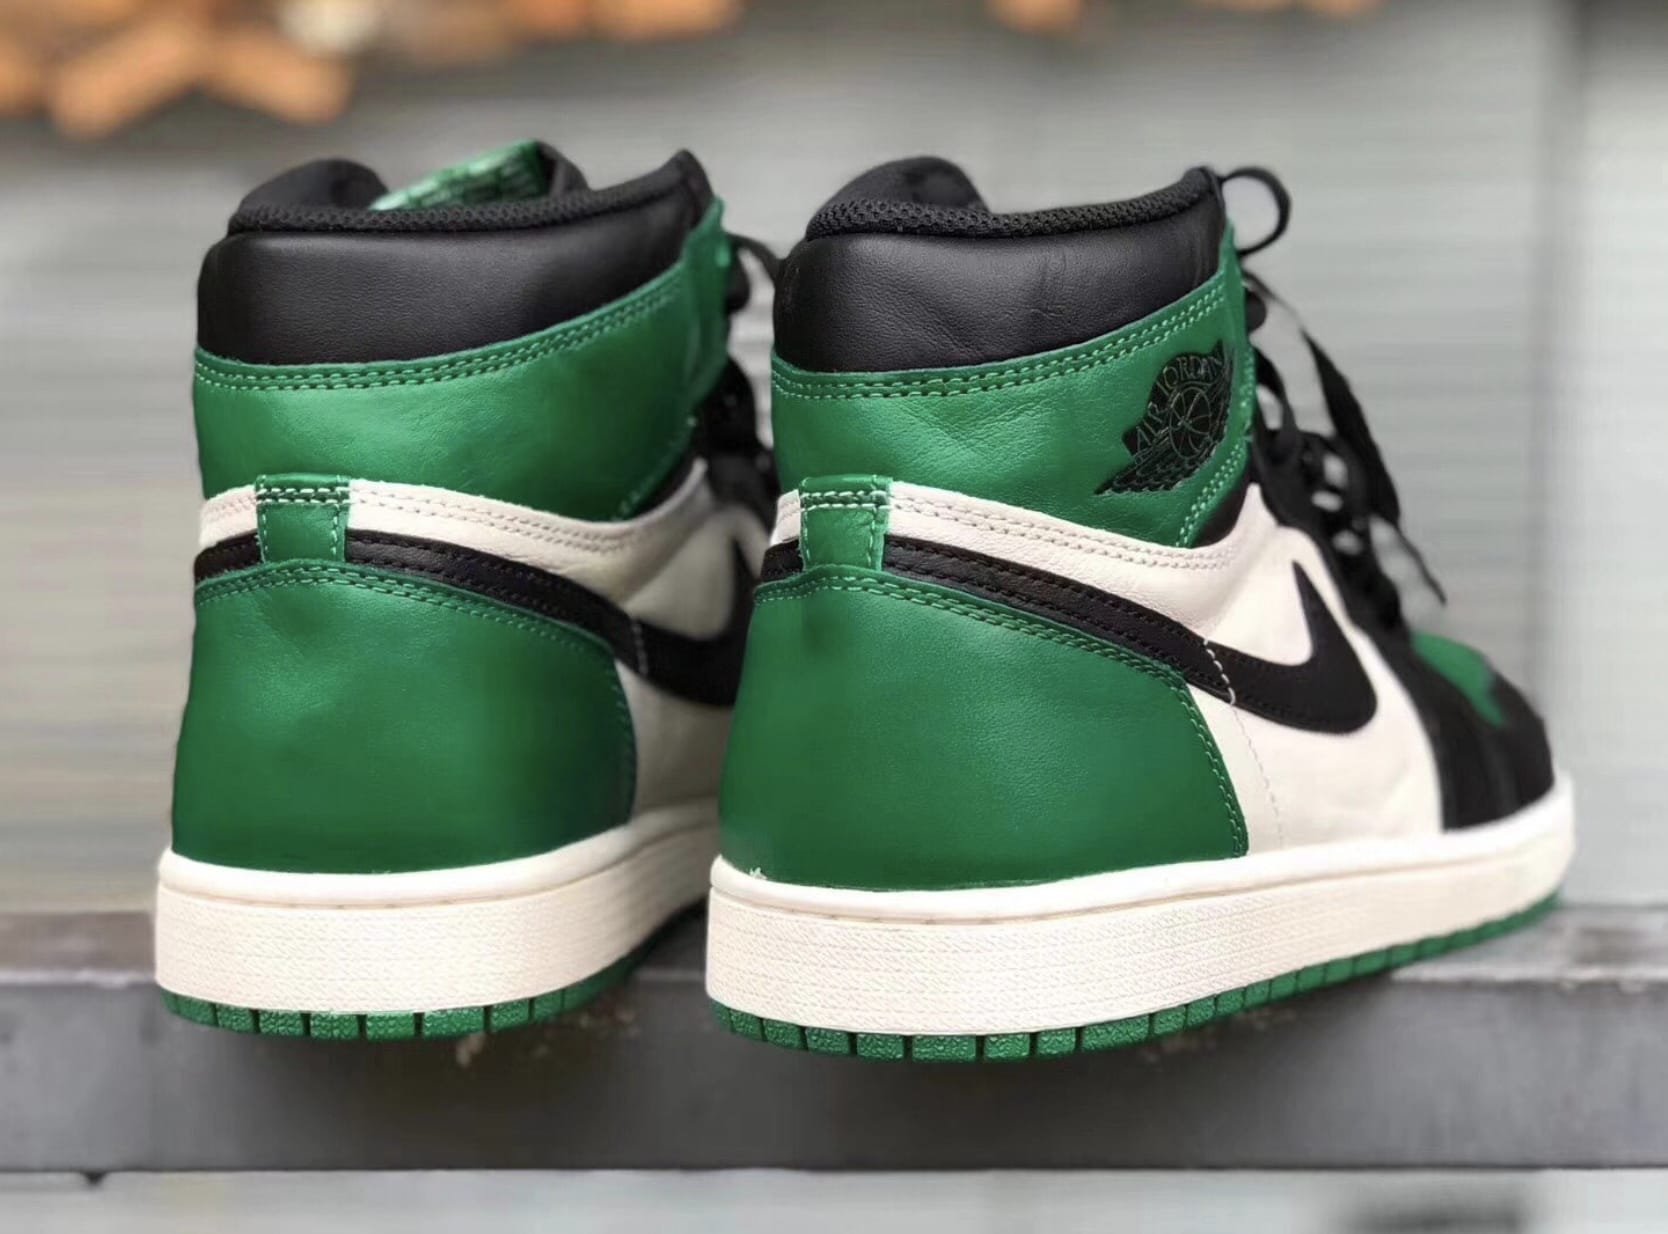 Air Jordan 1 High NRG 'Pine Green/Sail-Black' 555088-032 (Heel)